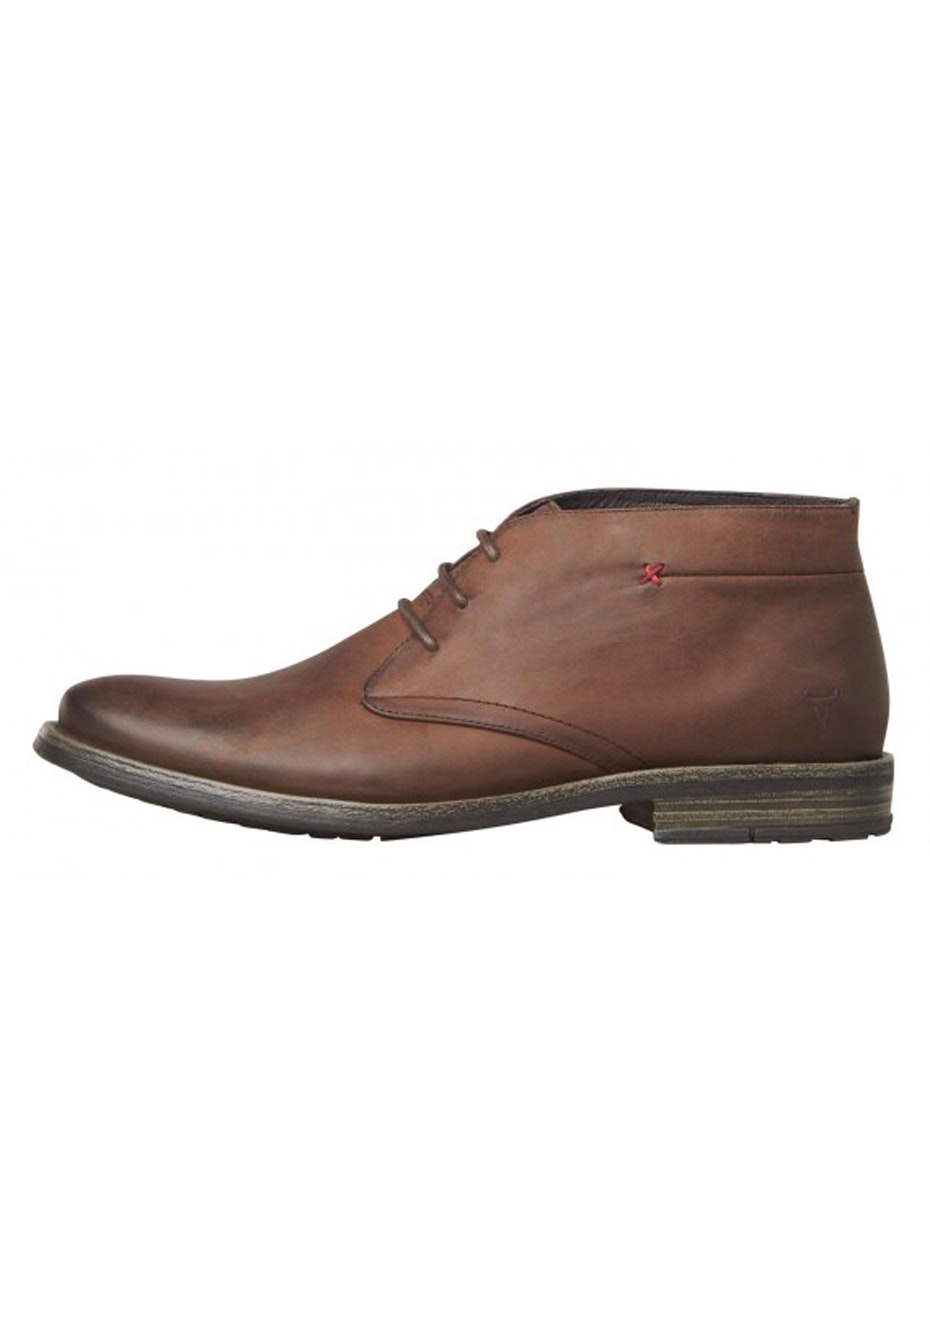 Windsor Smith - HOBB - BROWN LEATHER